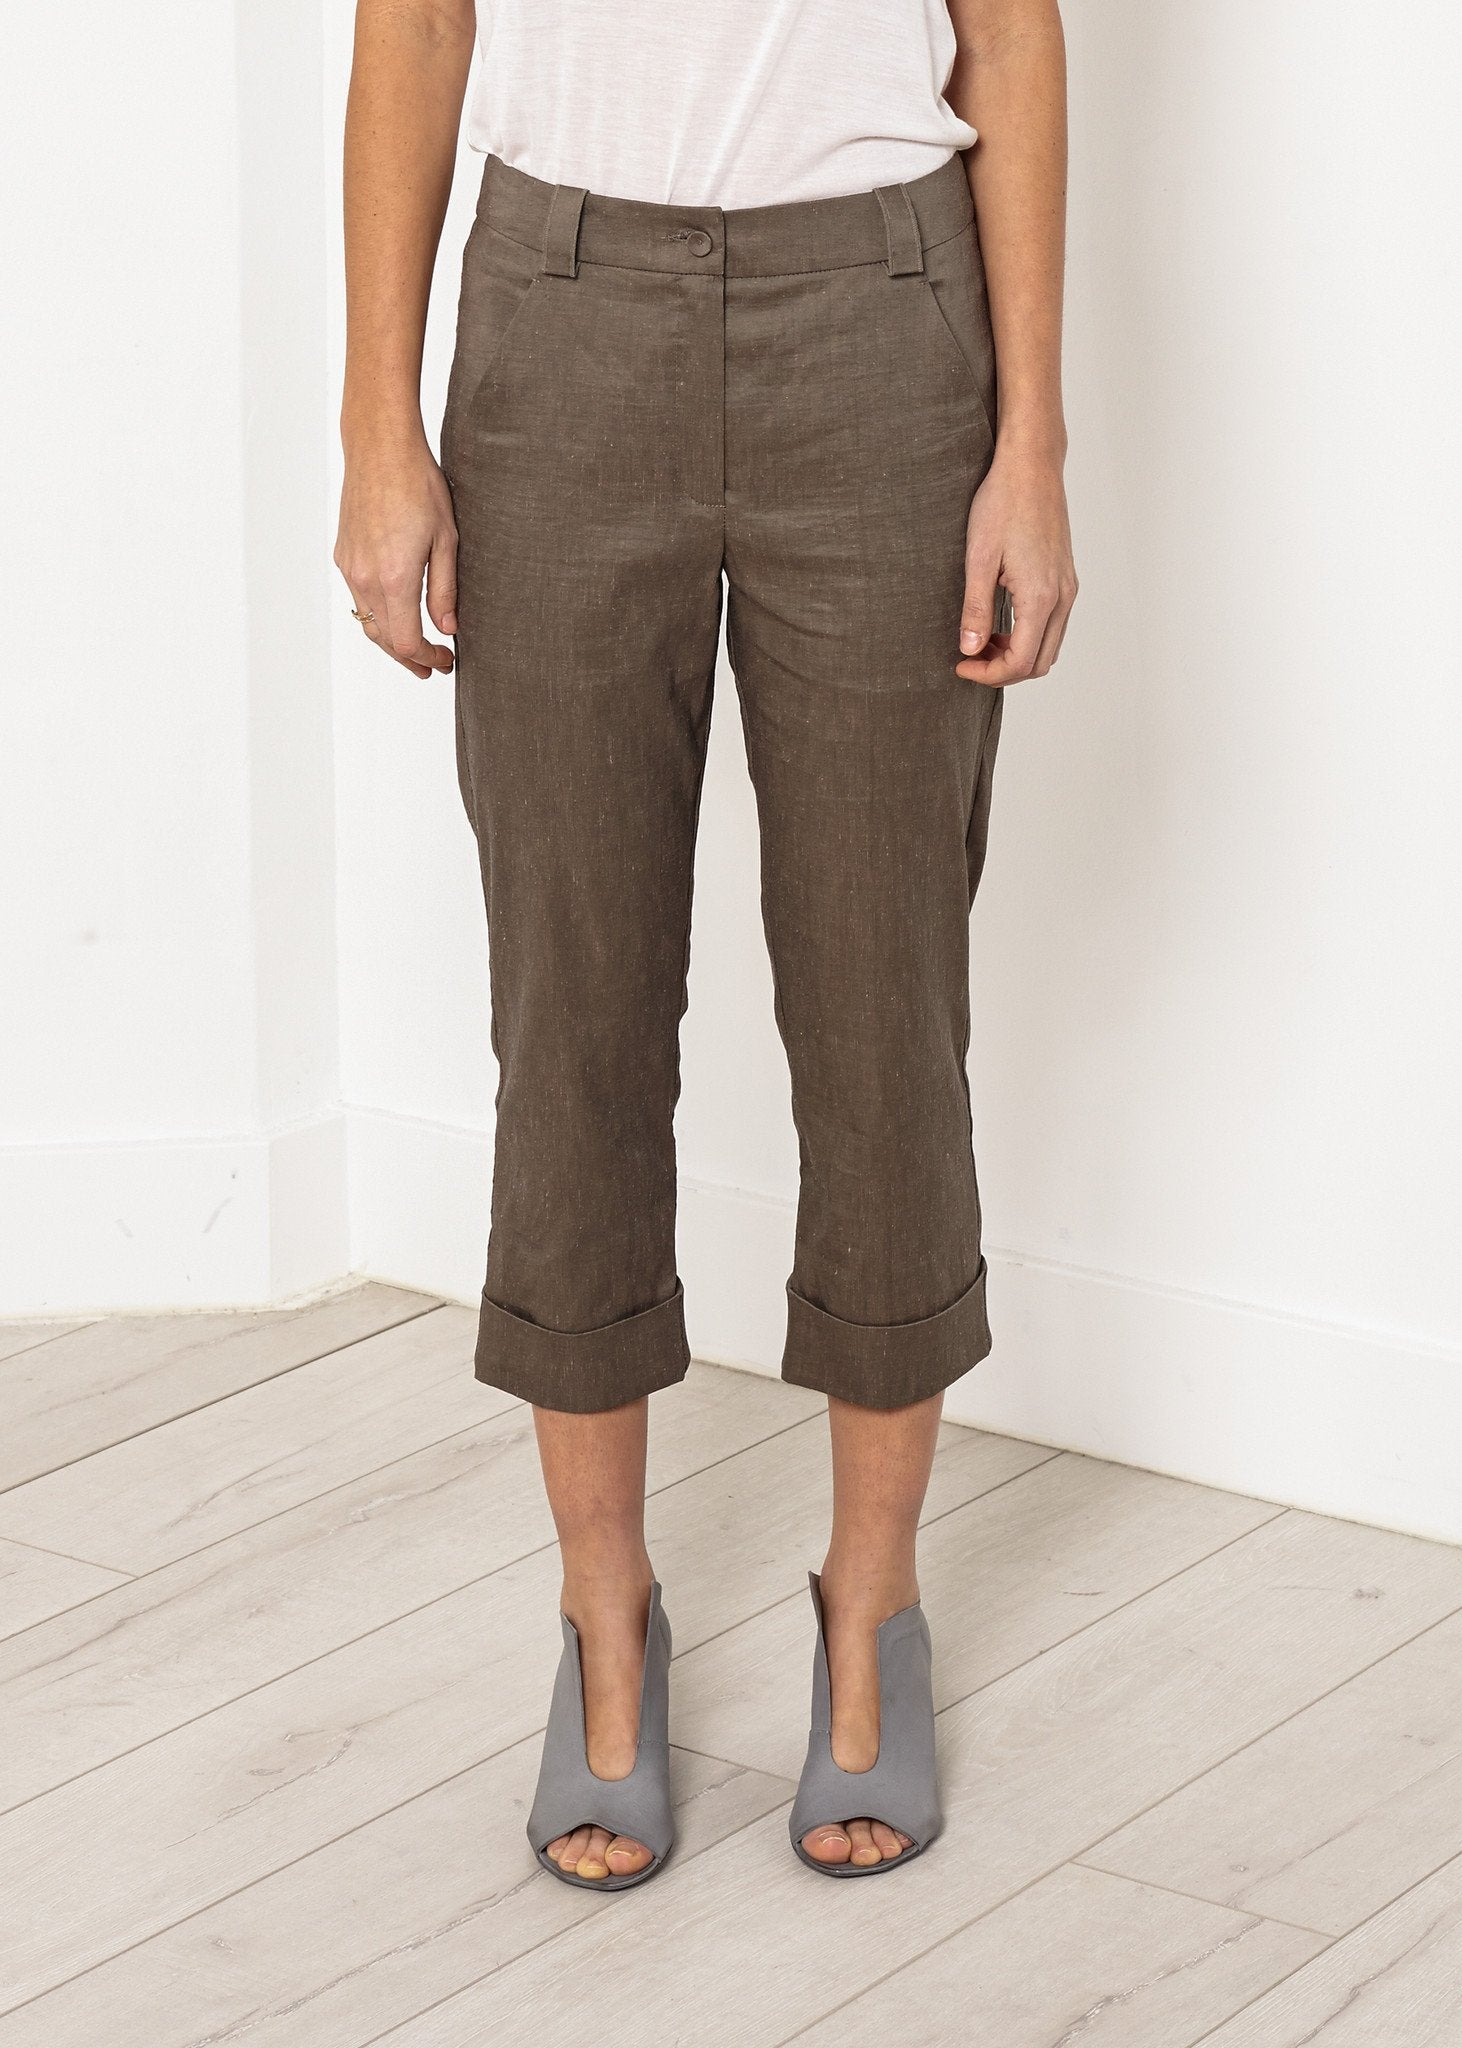 Tac Trouser in Mud